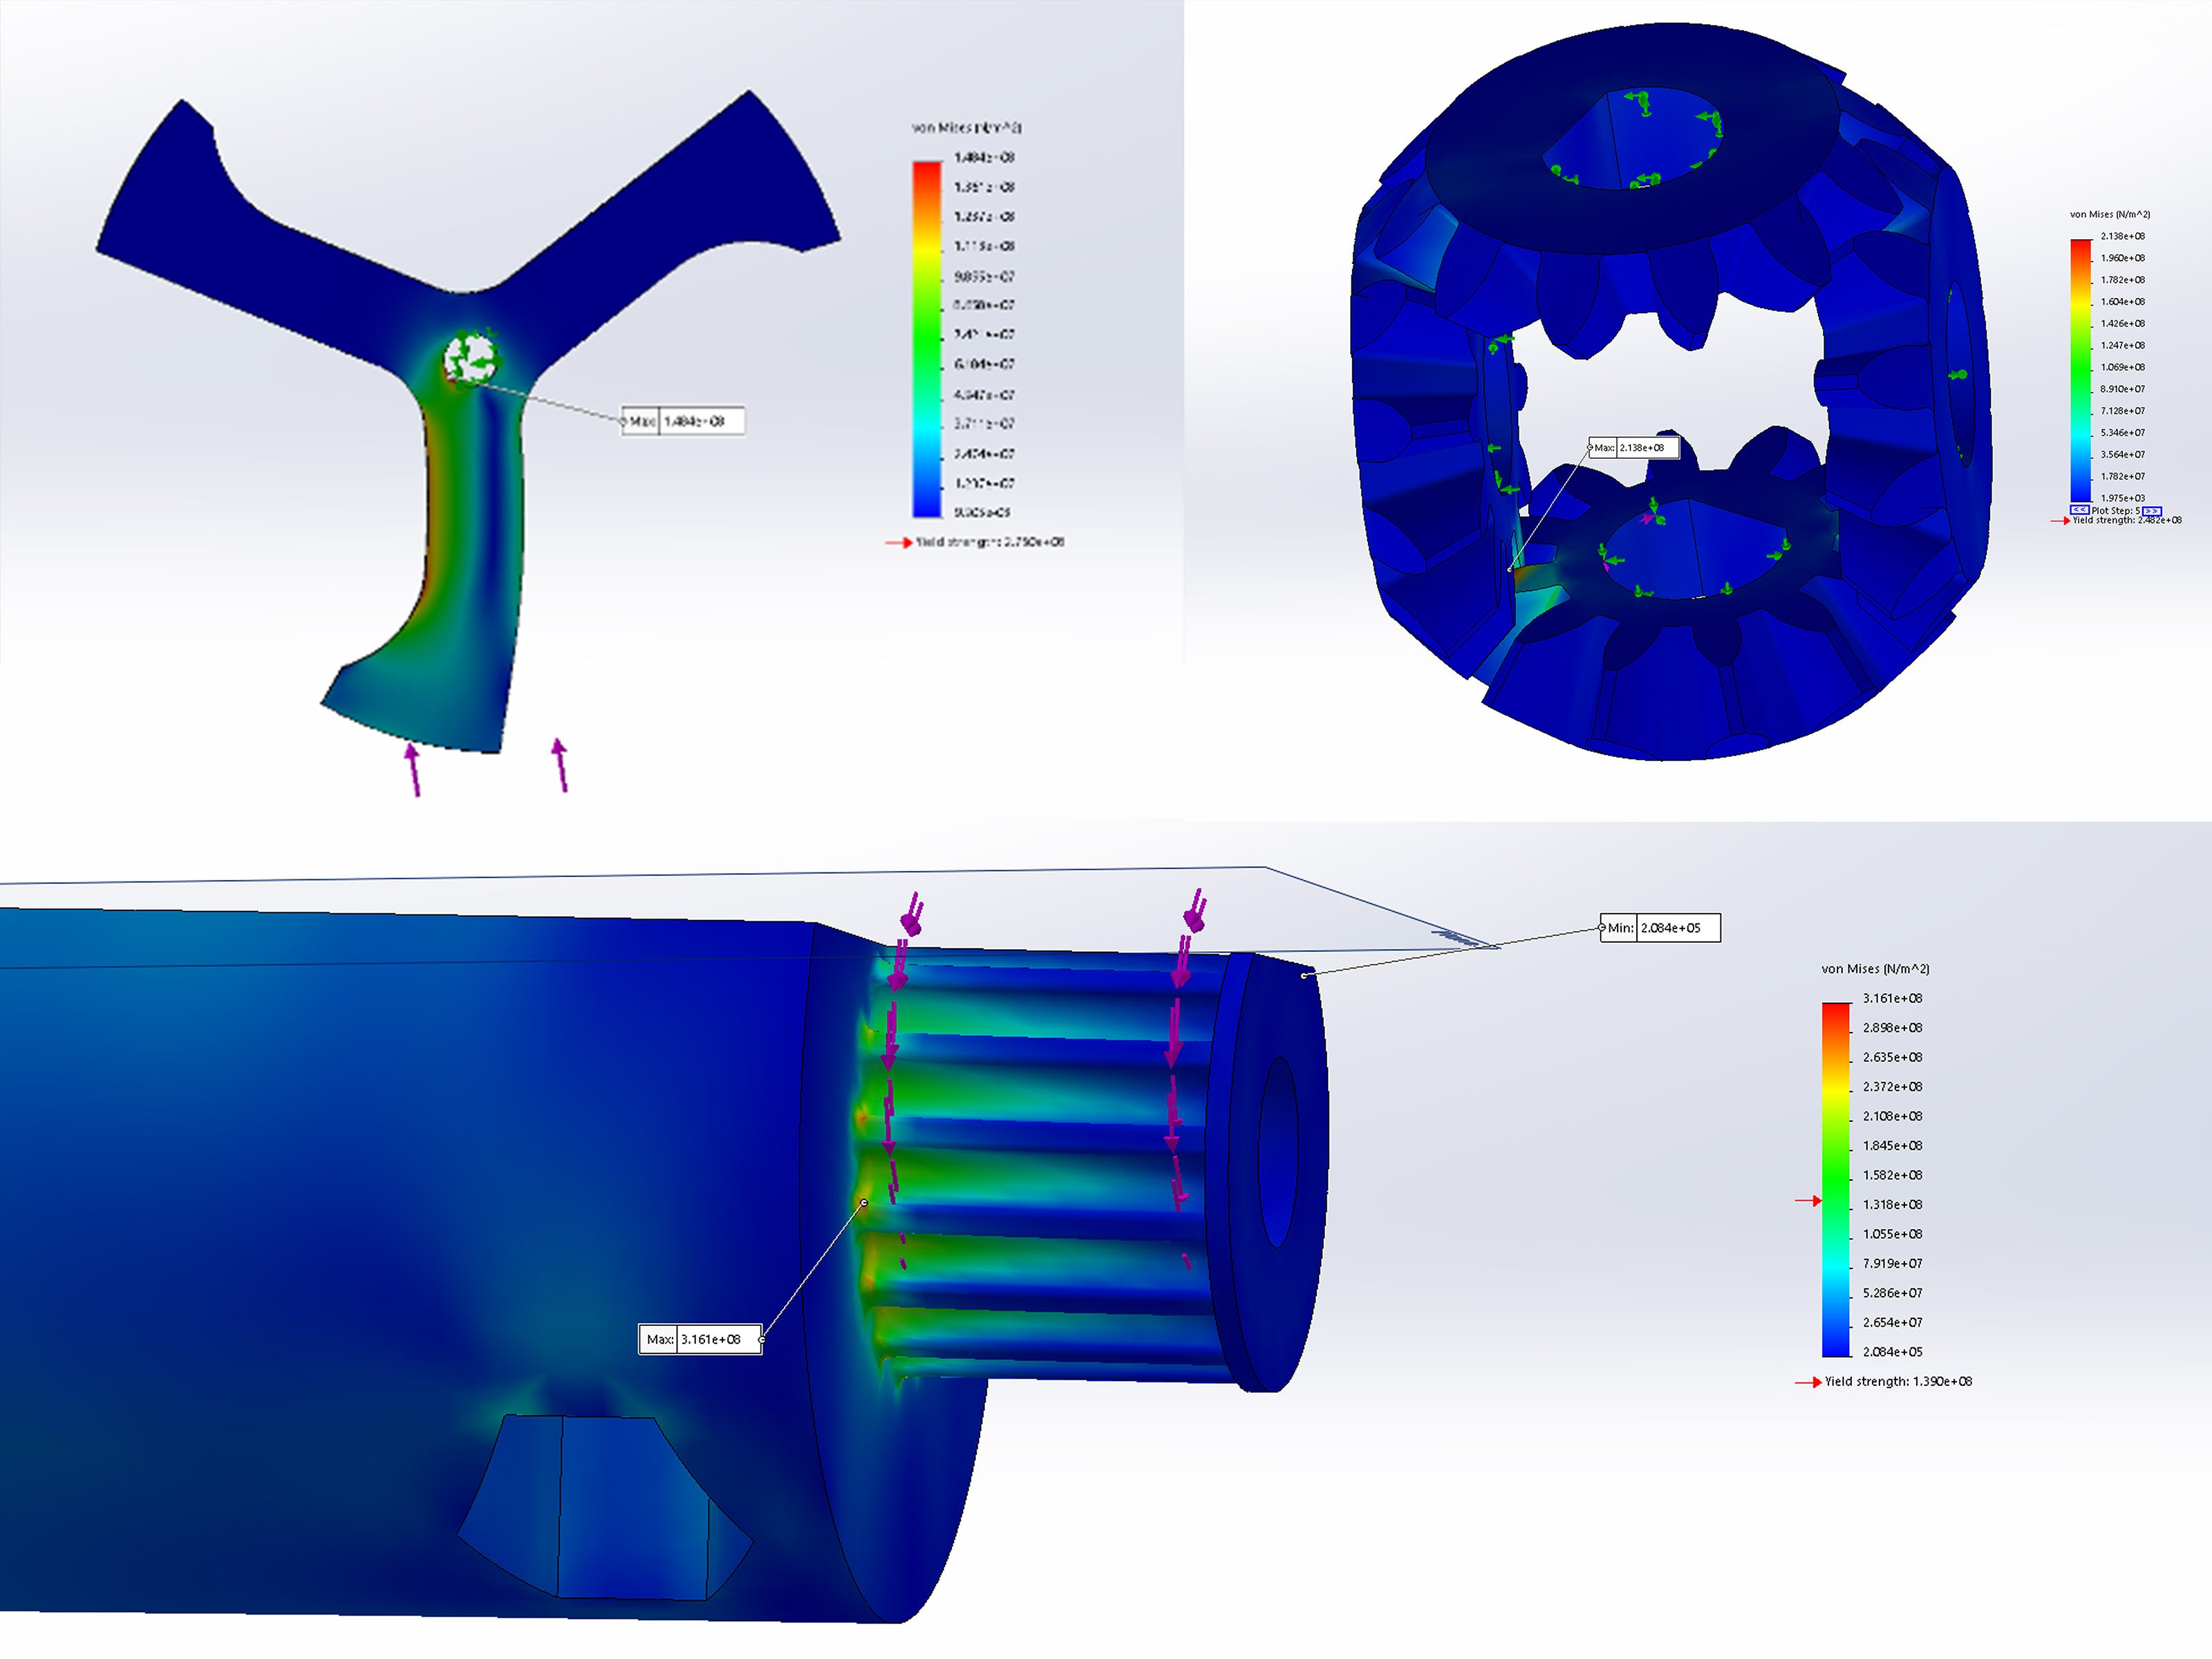 FEA assessments of component durability